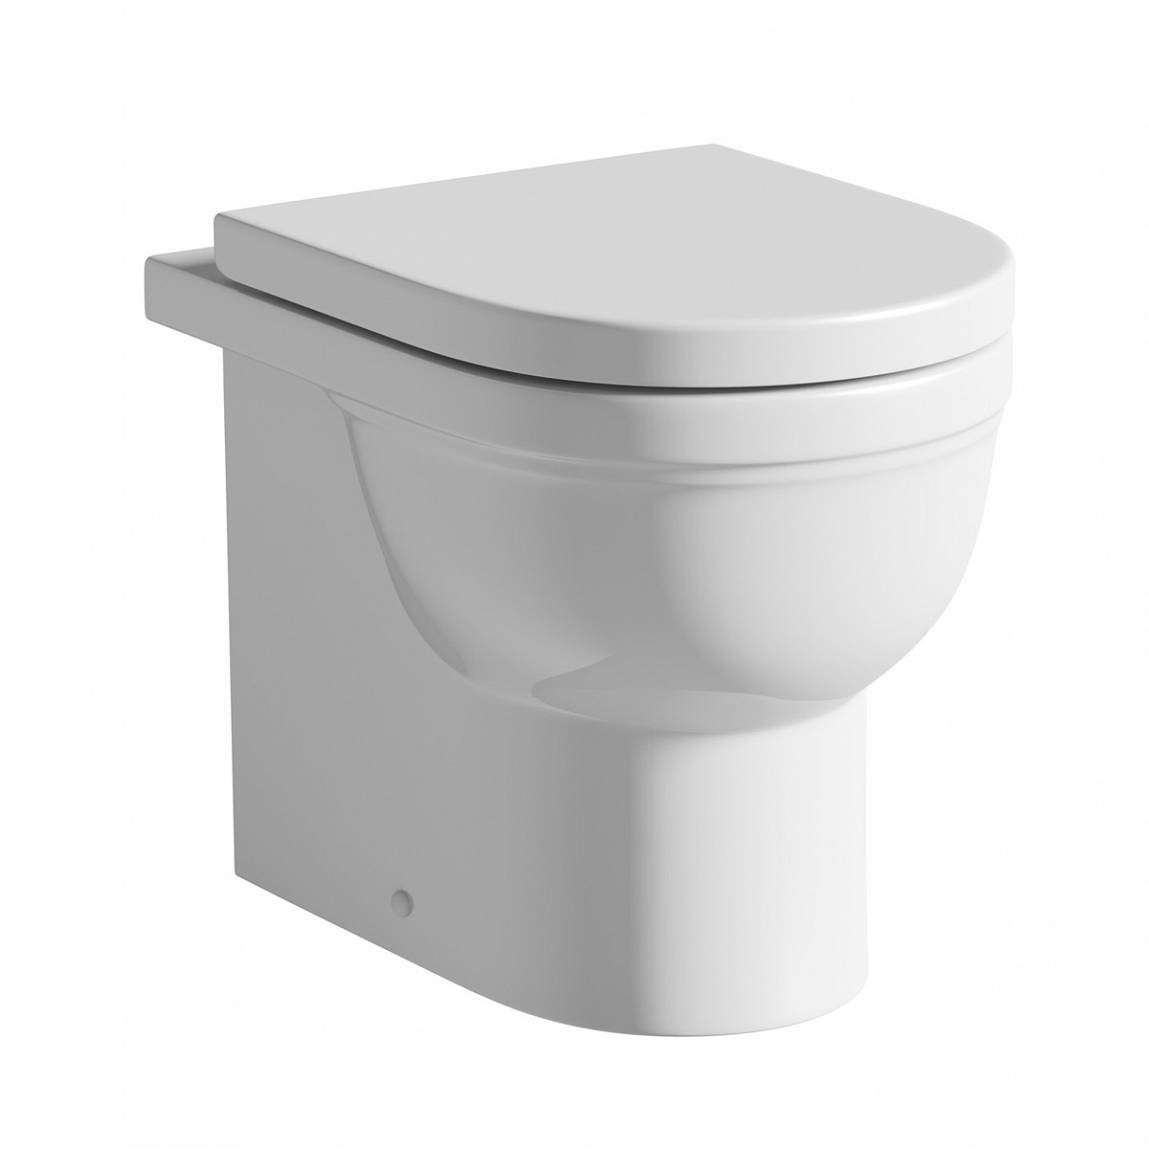 Image of Deco Back to Wall Toilet exc Seat